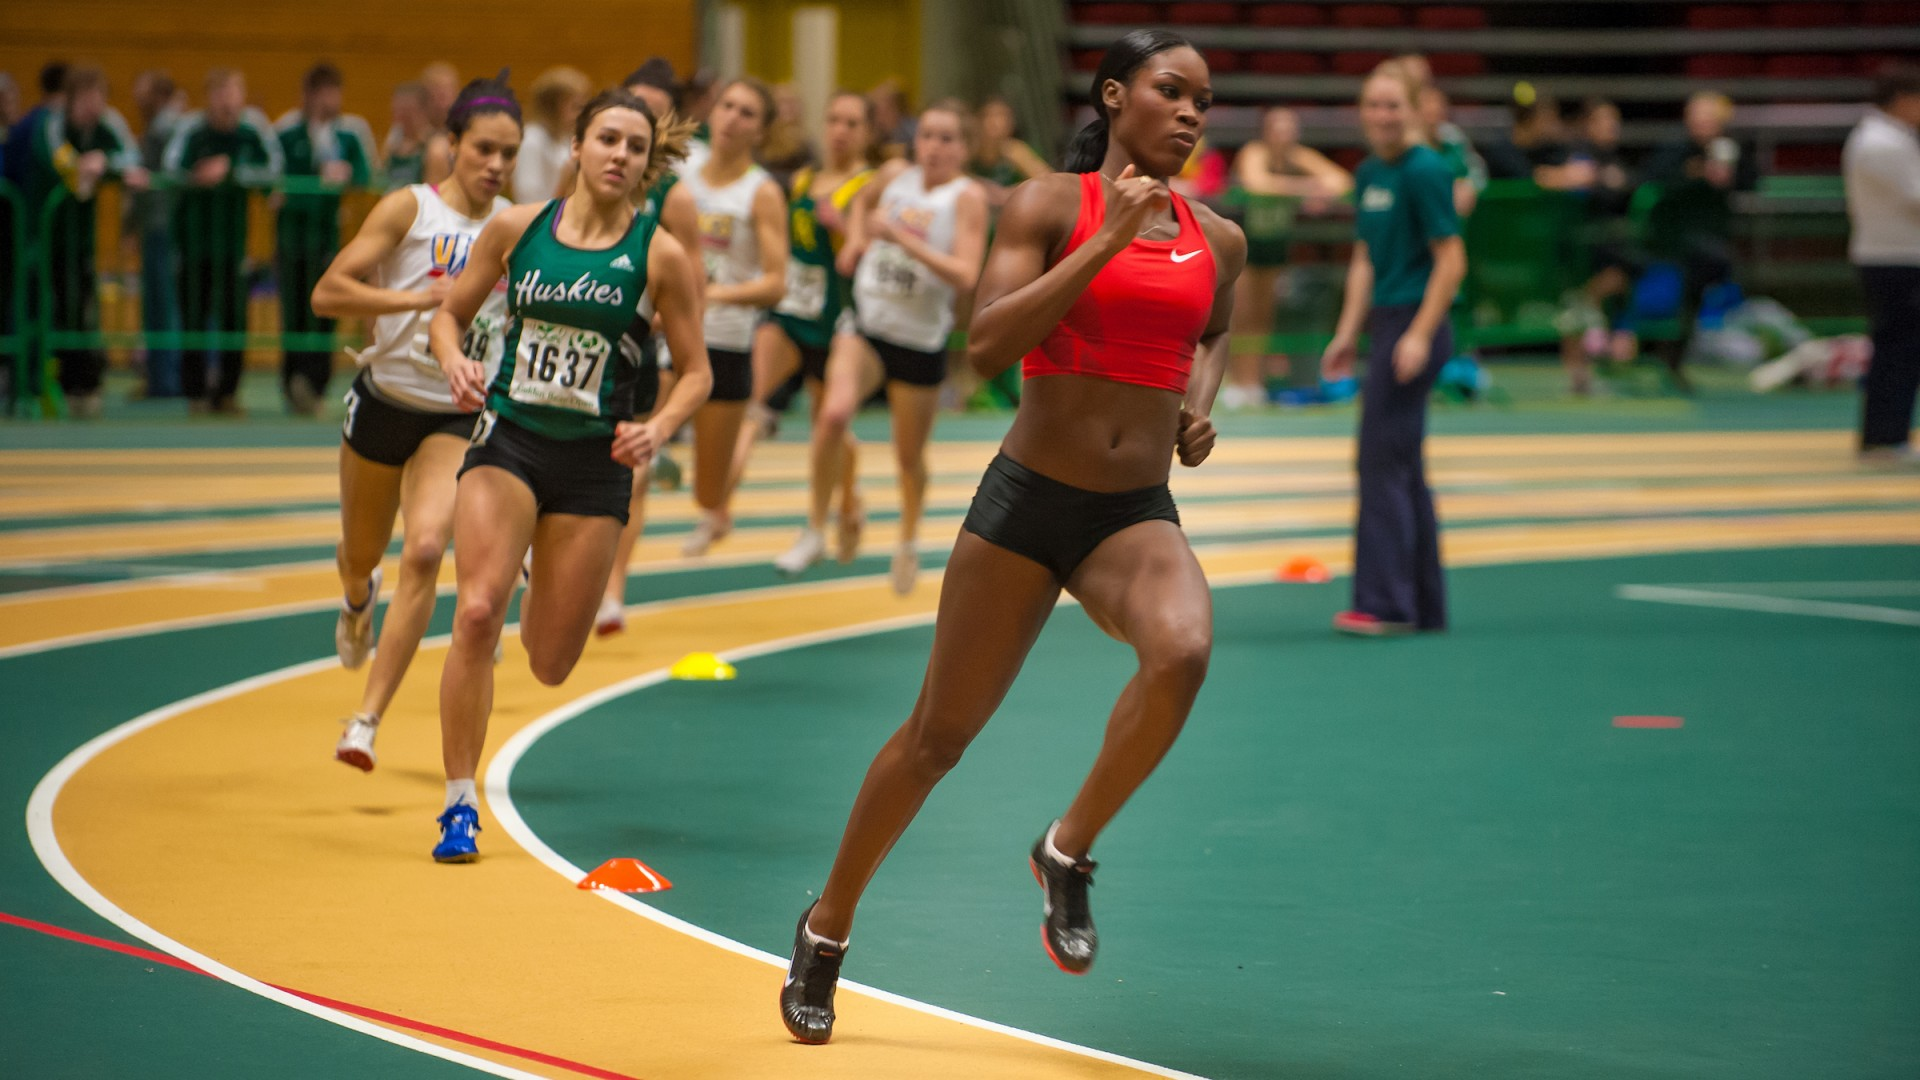 Carline Muir, who graduates with a Bachelor of Arts in Recreation, Sport and Tourism June 14, is seen here running to victory at the 40th Annual Golden Bear Open Track and Field Meet held at the U of A Butterdome in 2012. (Photo by Richard Siemens)